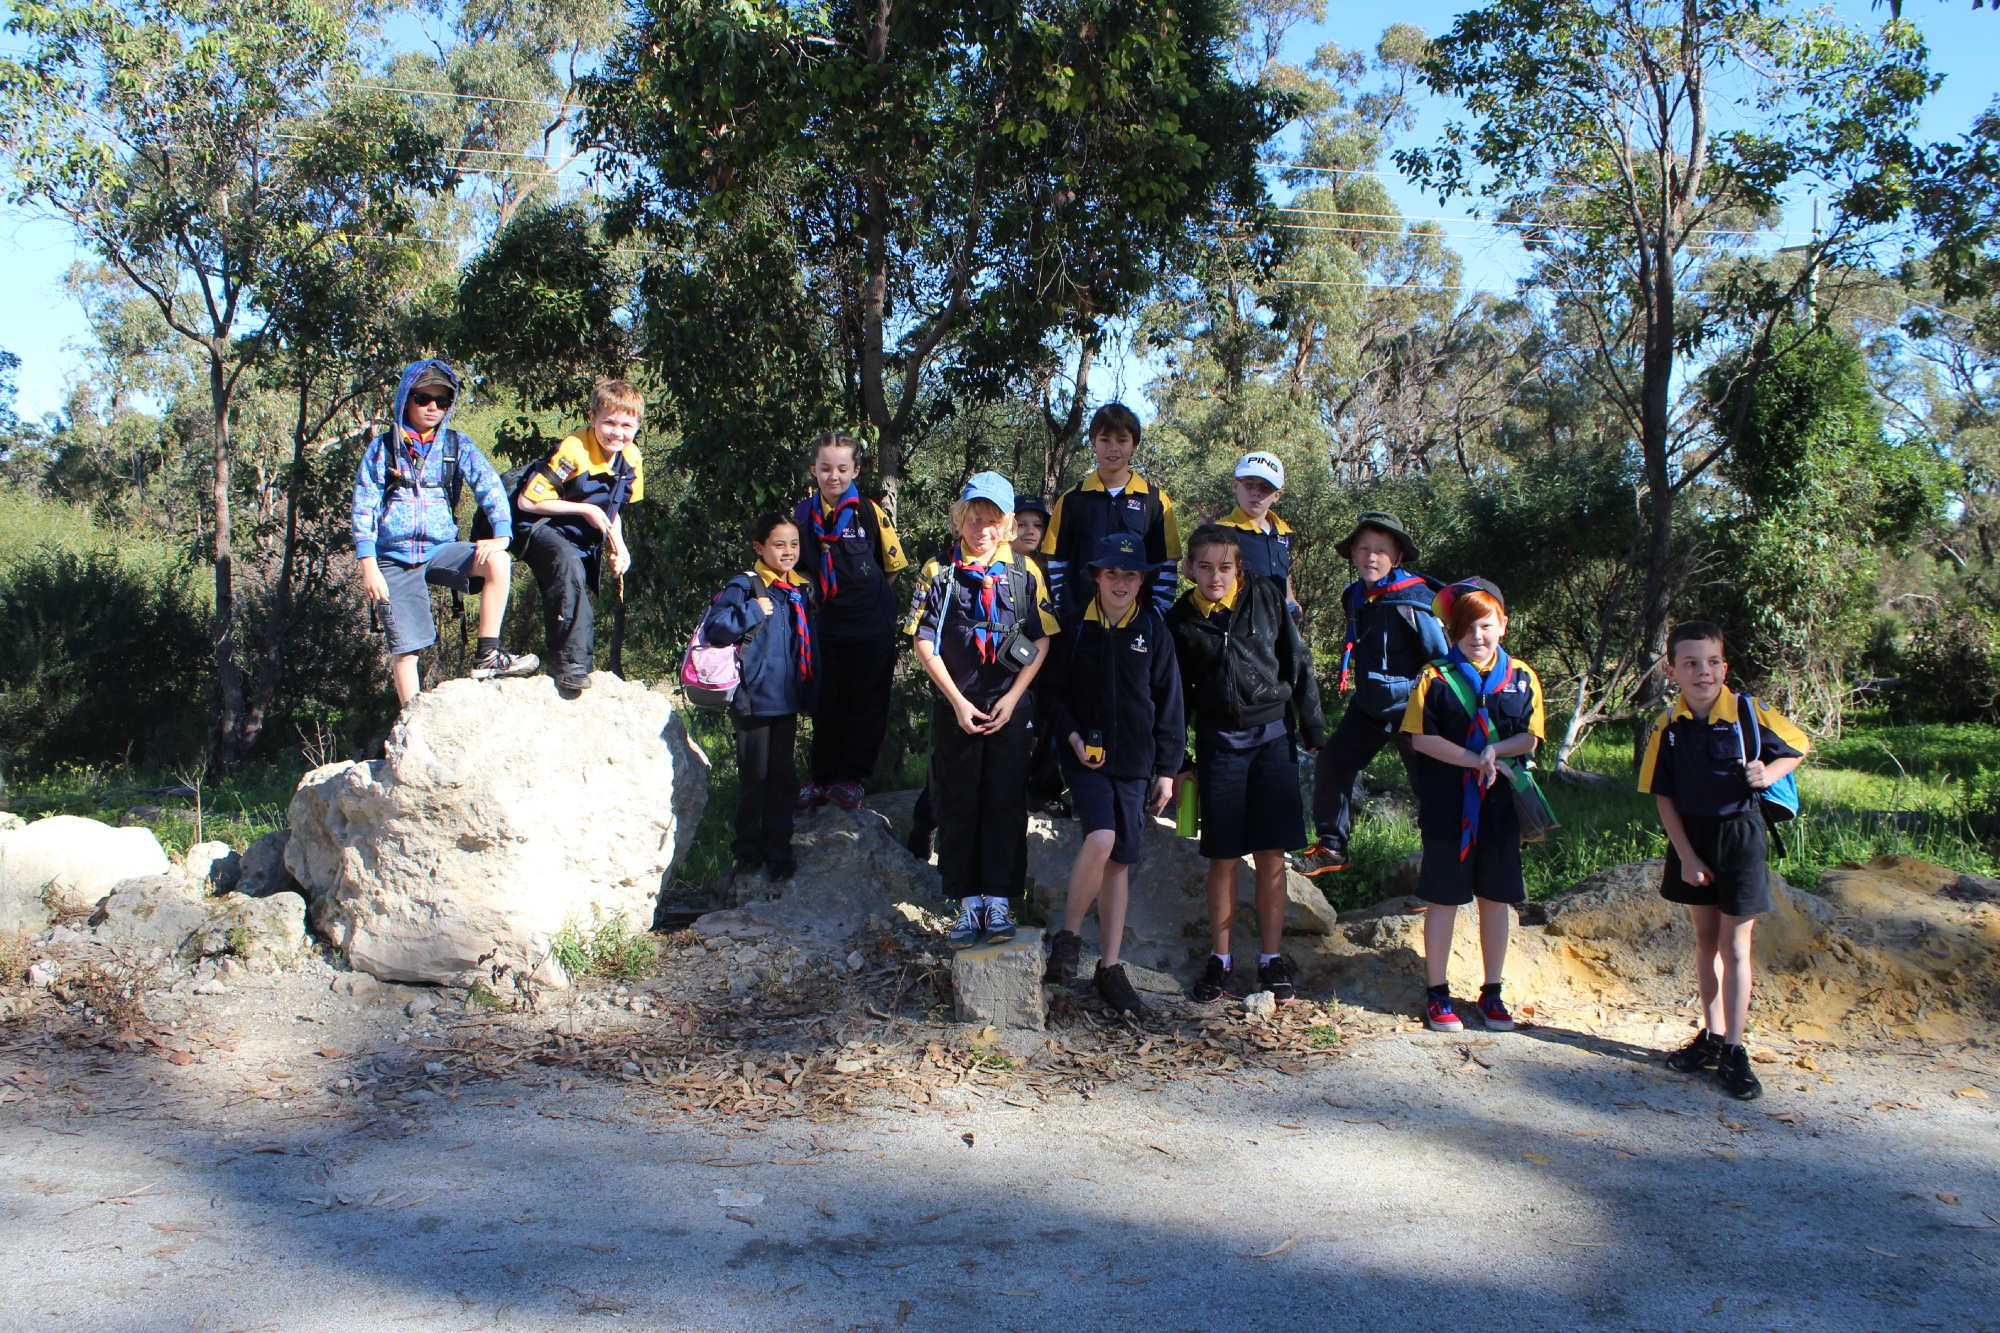 Scouts score most money in first round of Alkimos Sprout Hub Seedling Fund